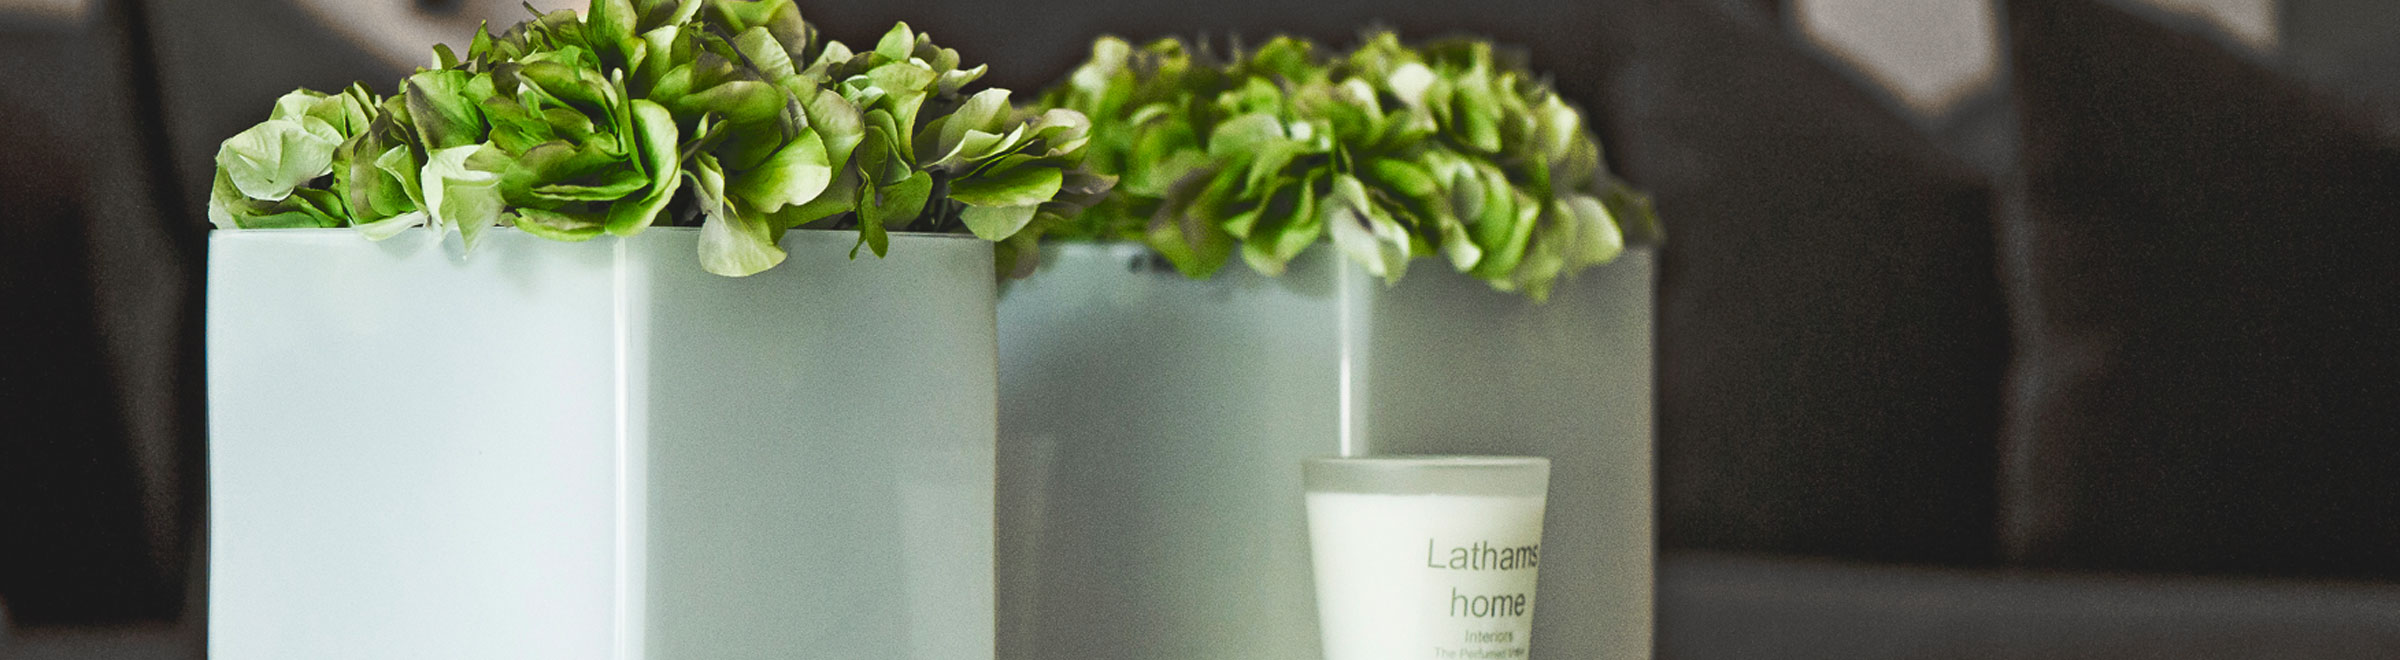 lathams_home_slider_accessories